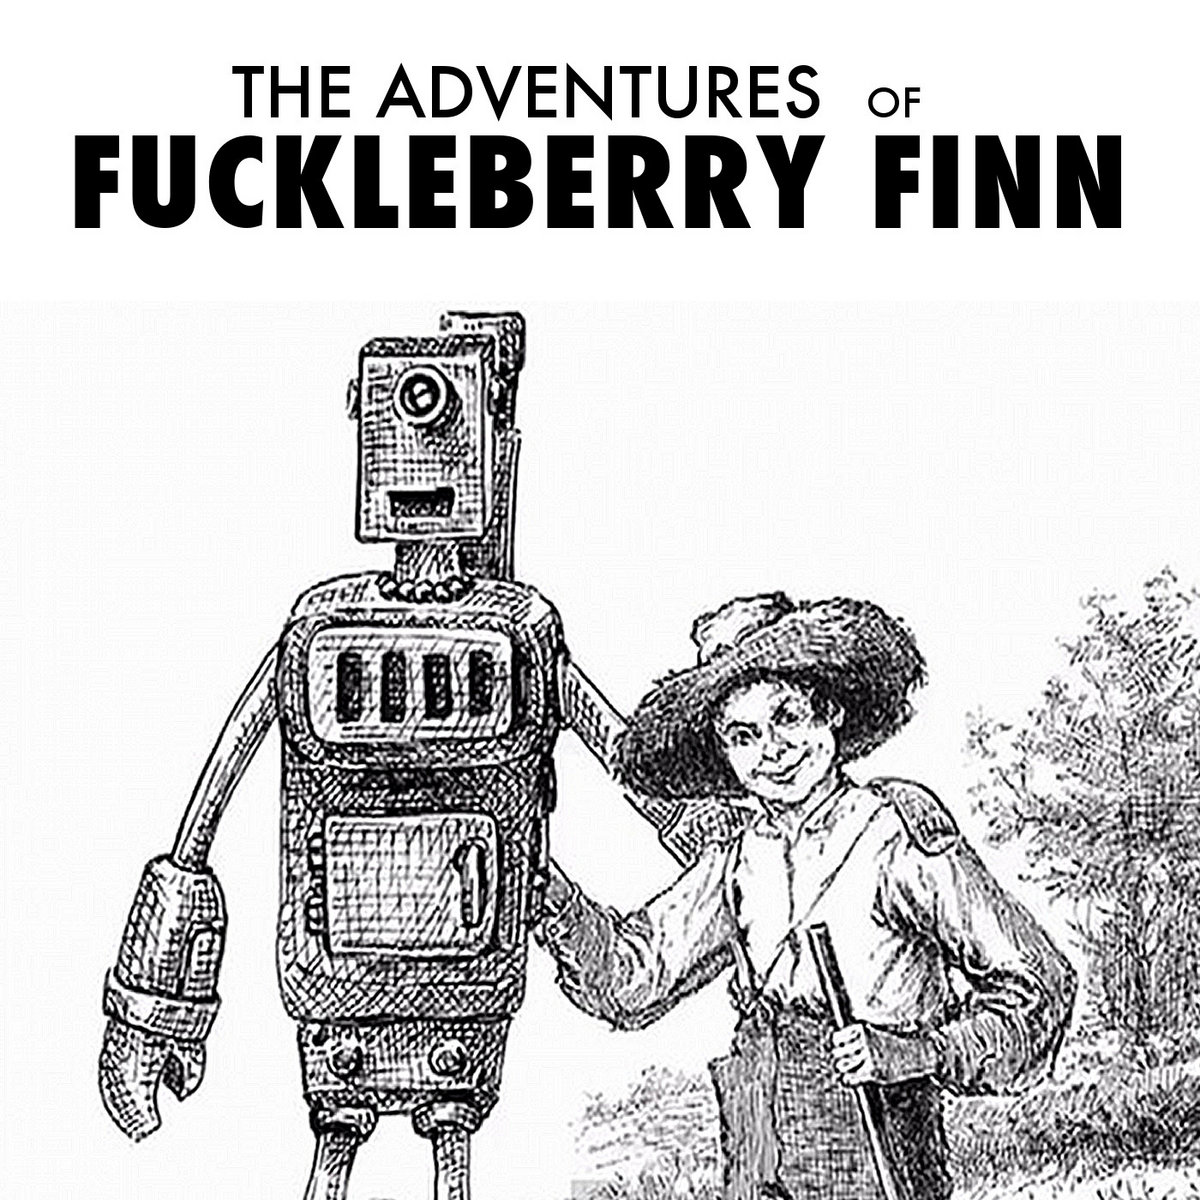 Rock lottery the adventures of fuckleberry finn by the adventures of fuckleberry finn malvernweather Gallery